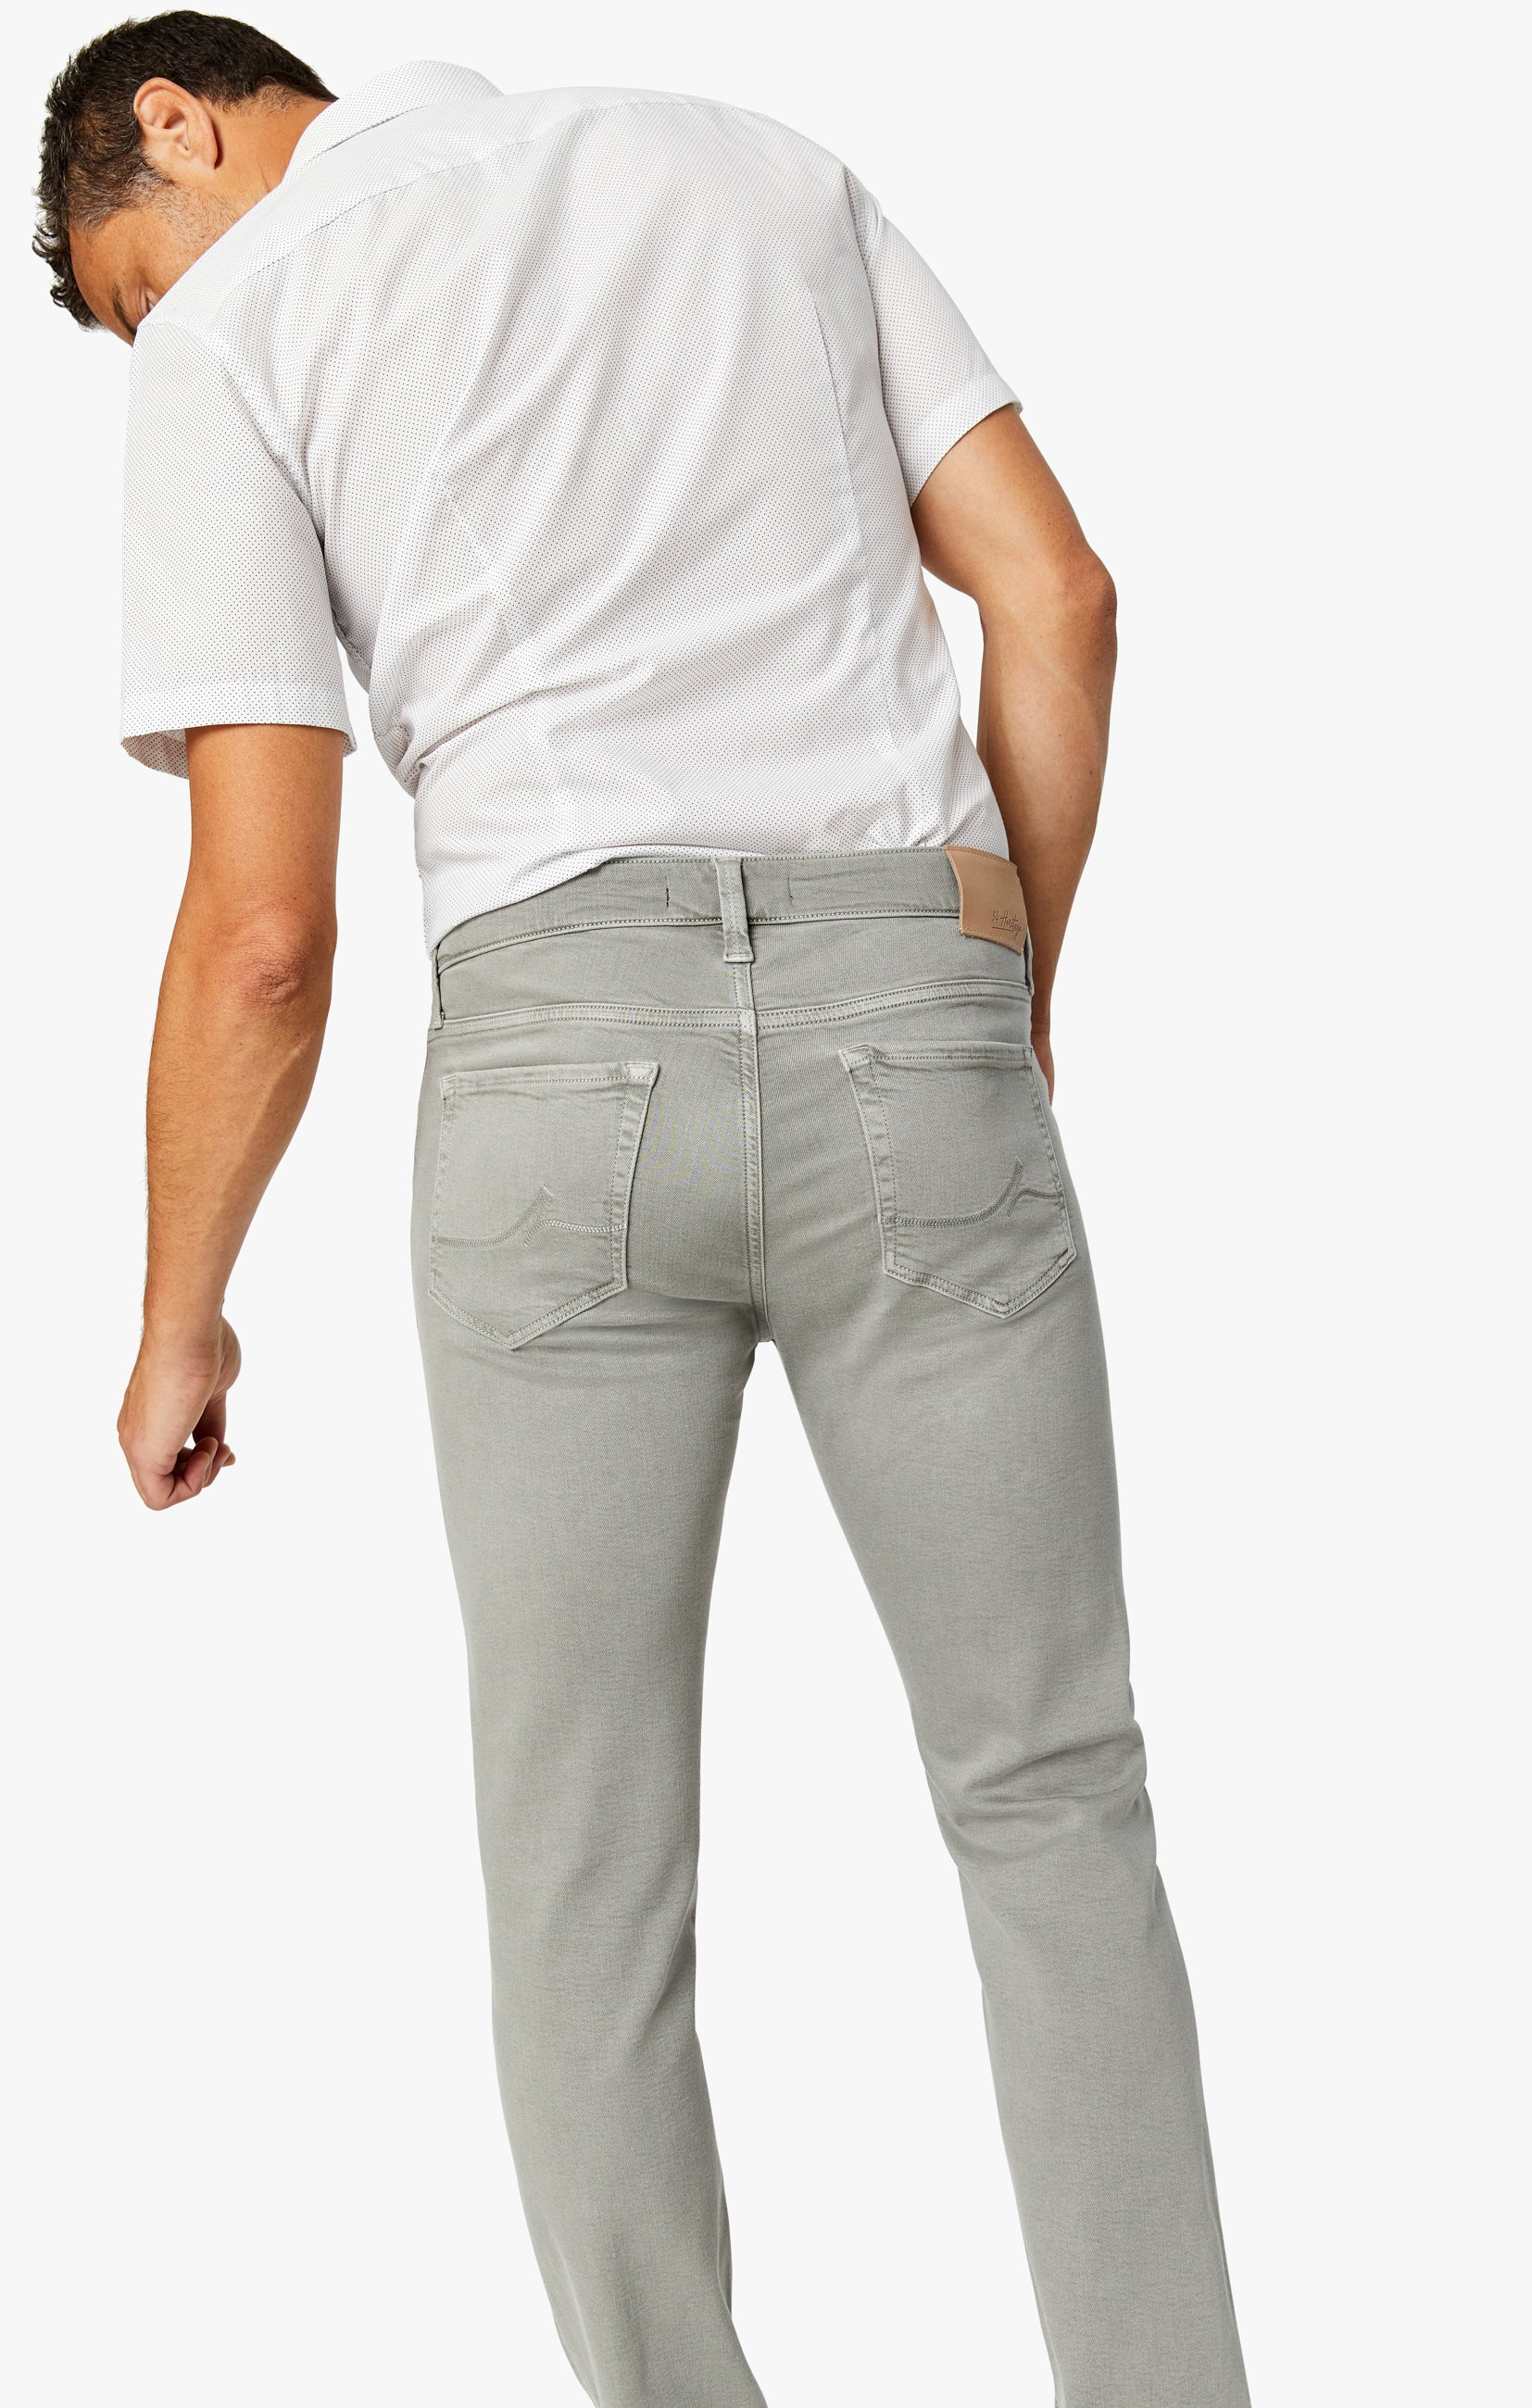 Cool Slim Leg Pants in Light Grey Comfort Image 4